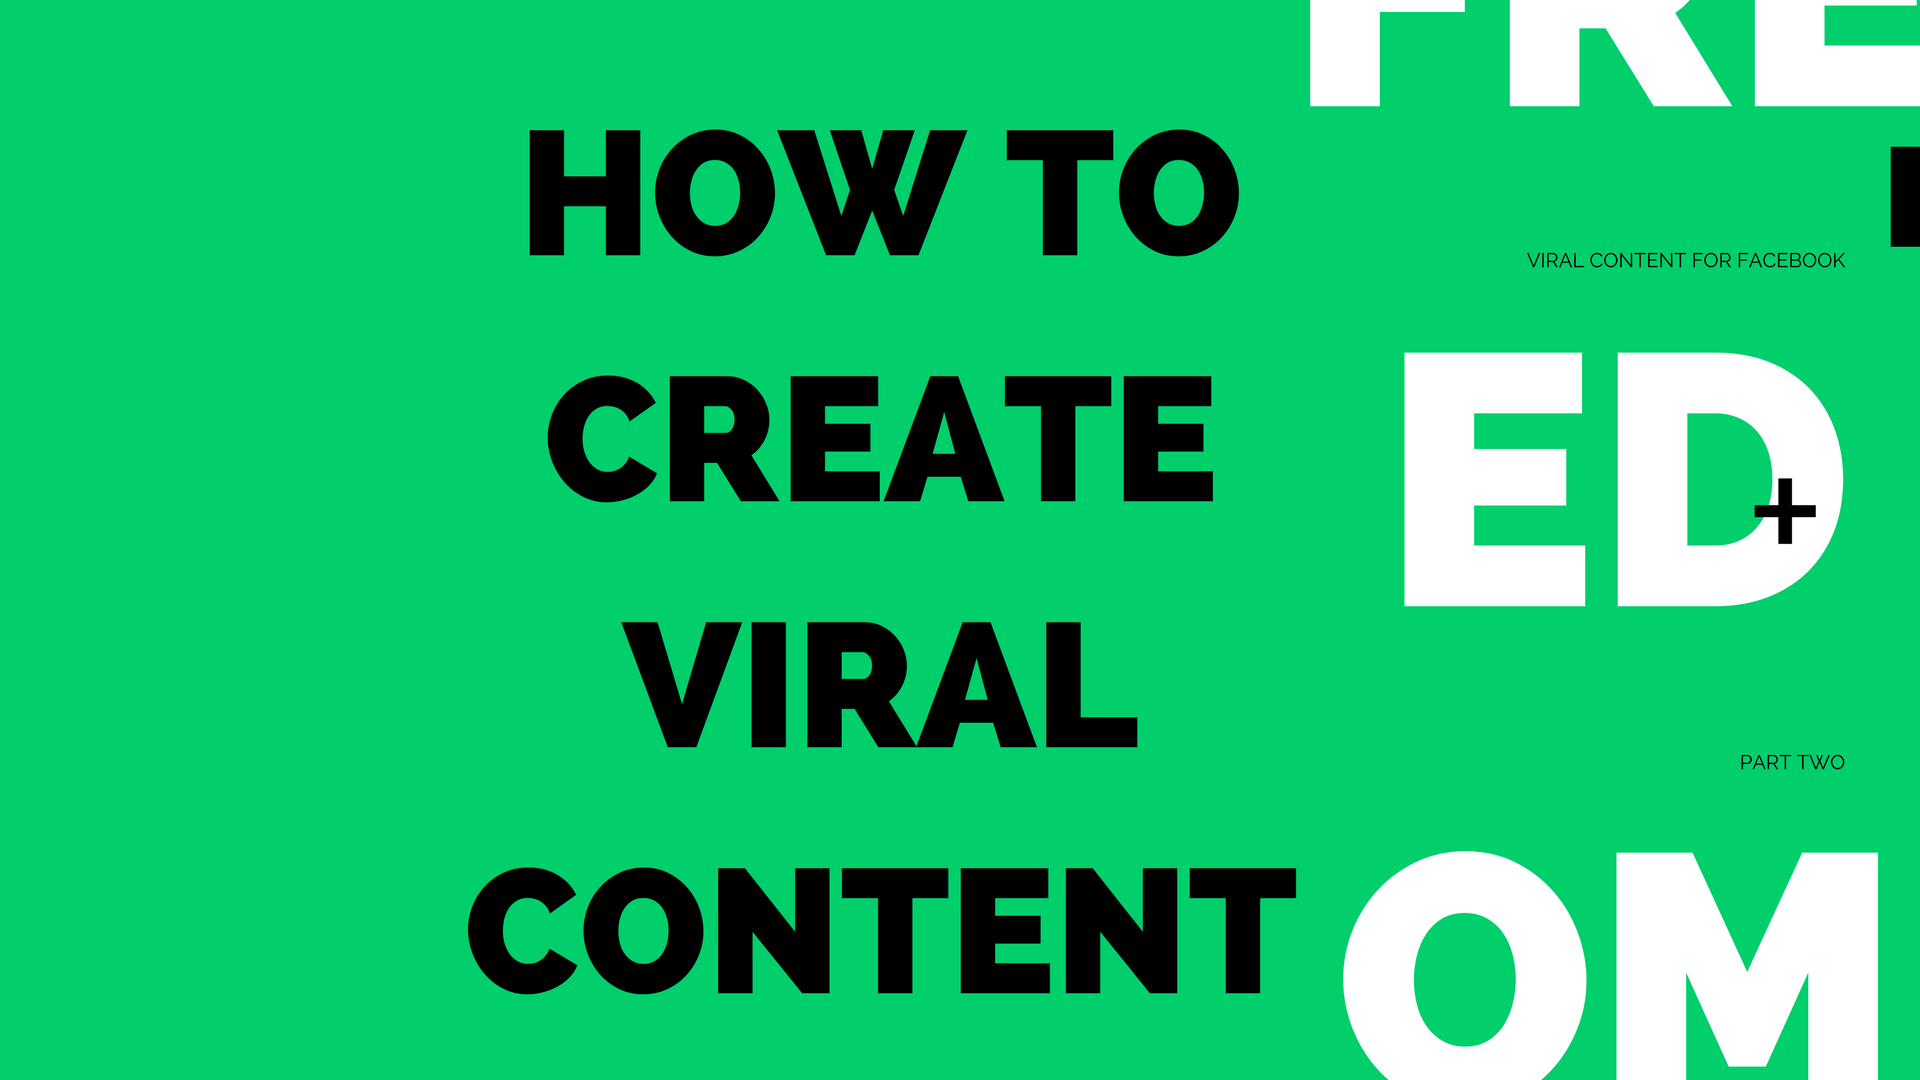 How To Create Viral Content For Facebook Part Two